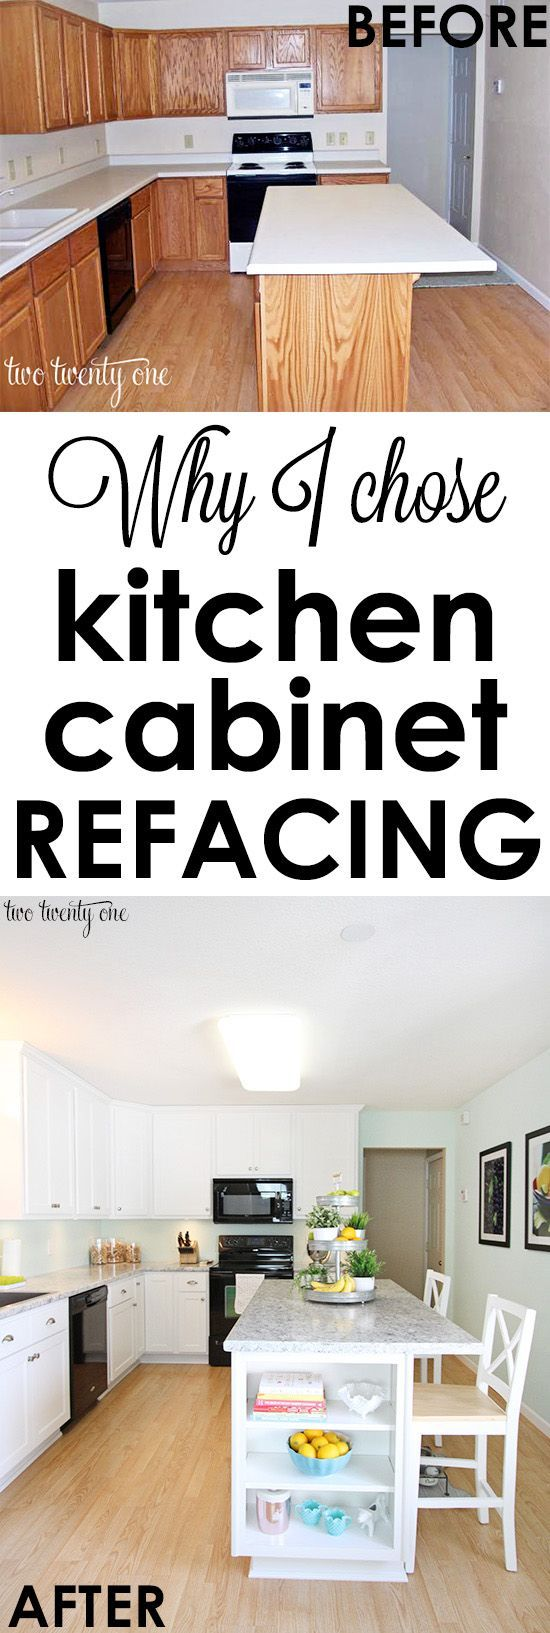 25 best ideas about refacing kitchen cabinets on pinterest reface kitchen cabinets diy cabinet refacing and update kitchen cabinets